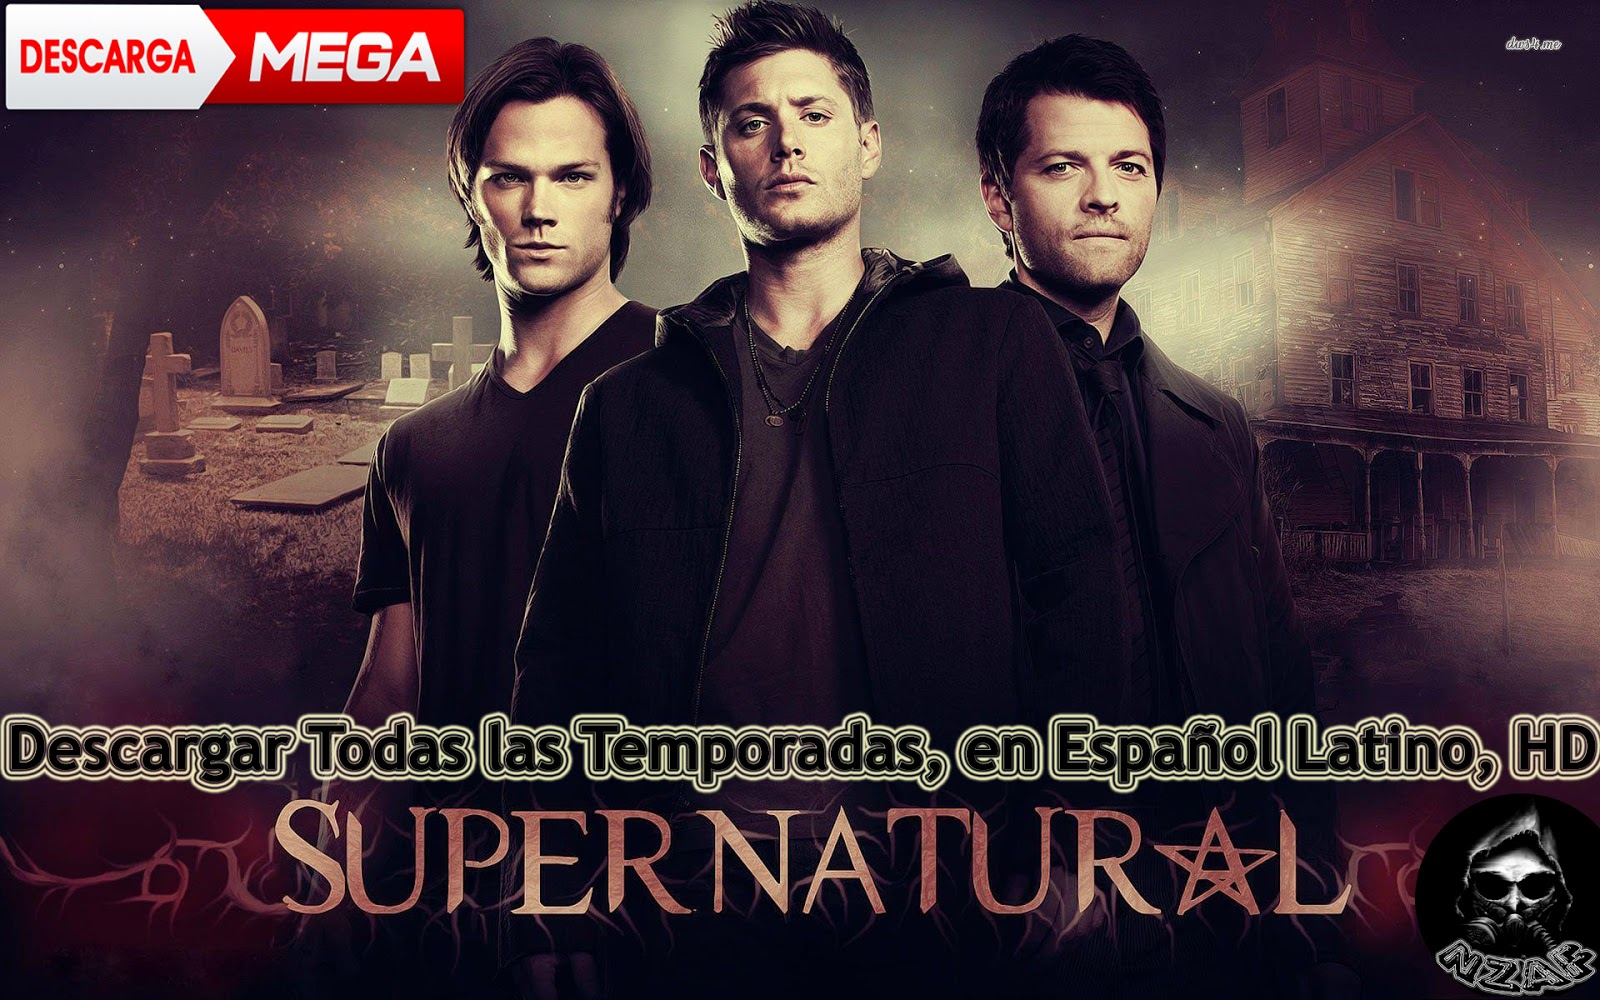 Supernatural Libros Nzaf Descargar Todas Las 14 Temporadas De Supernatural En